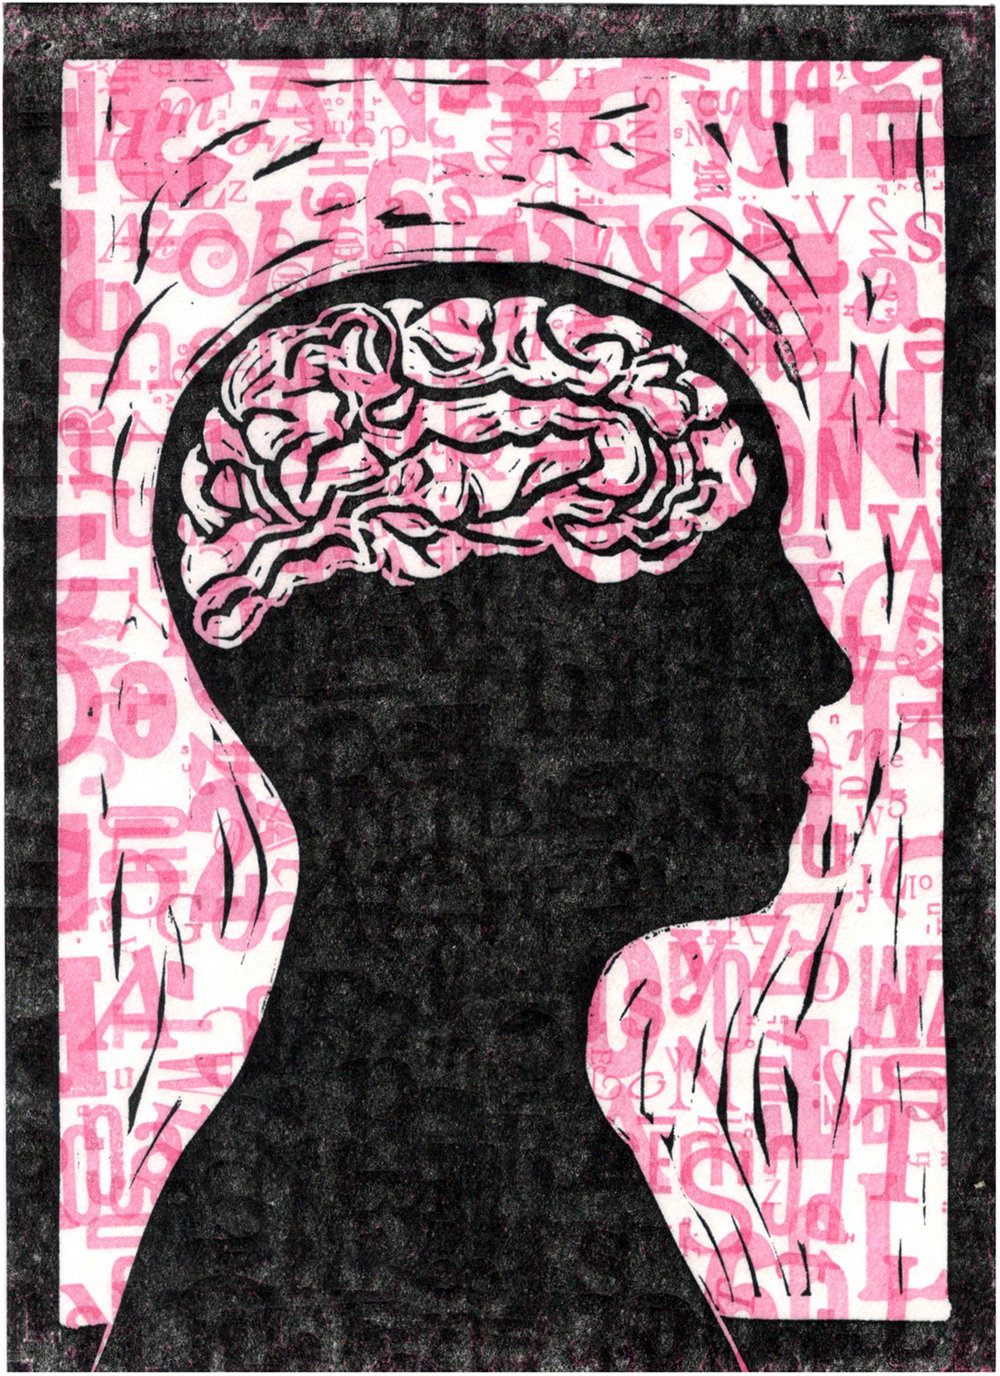 Filter  , letterpress and linoleum cut on paper. The pink letters in the background were printed from the metal type shown above.